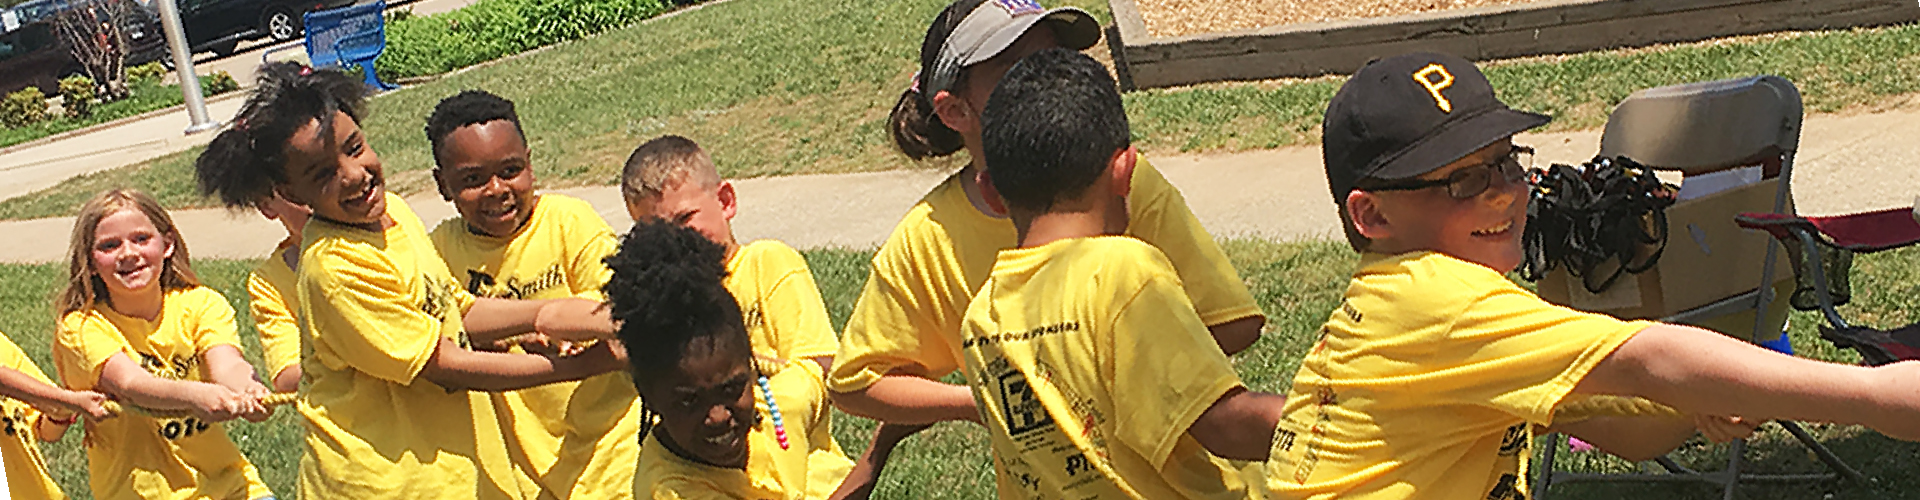 Students wearing yellow school spirit t-shirts pulling on a rope while playing tug-of-war.